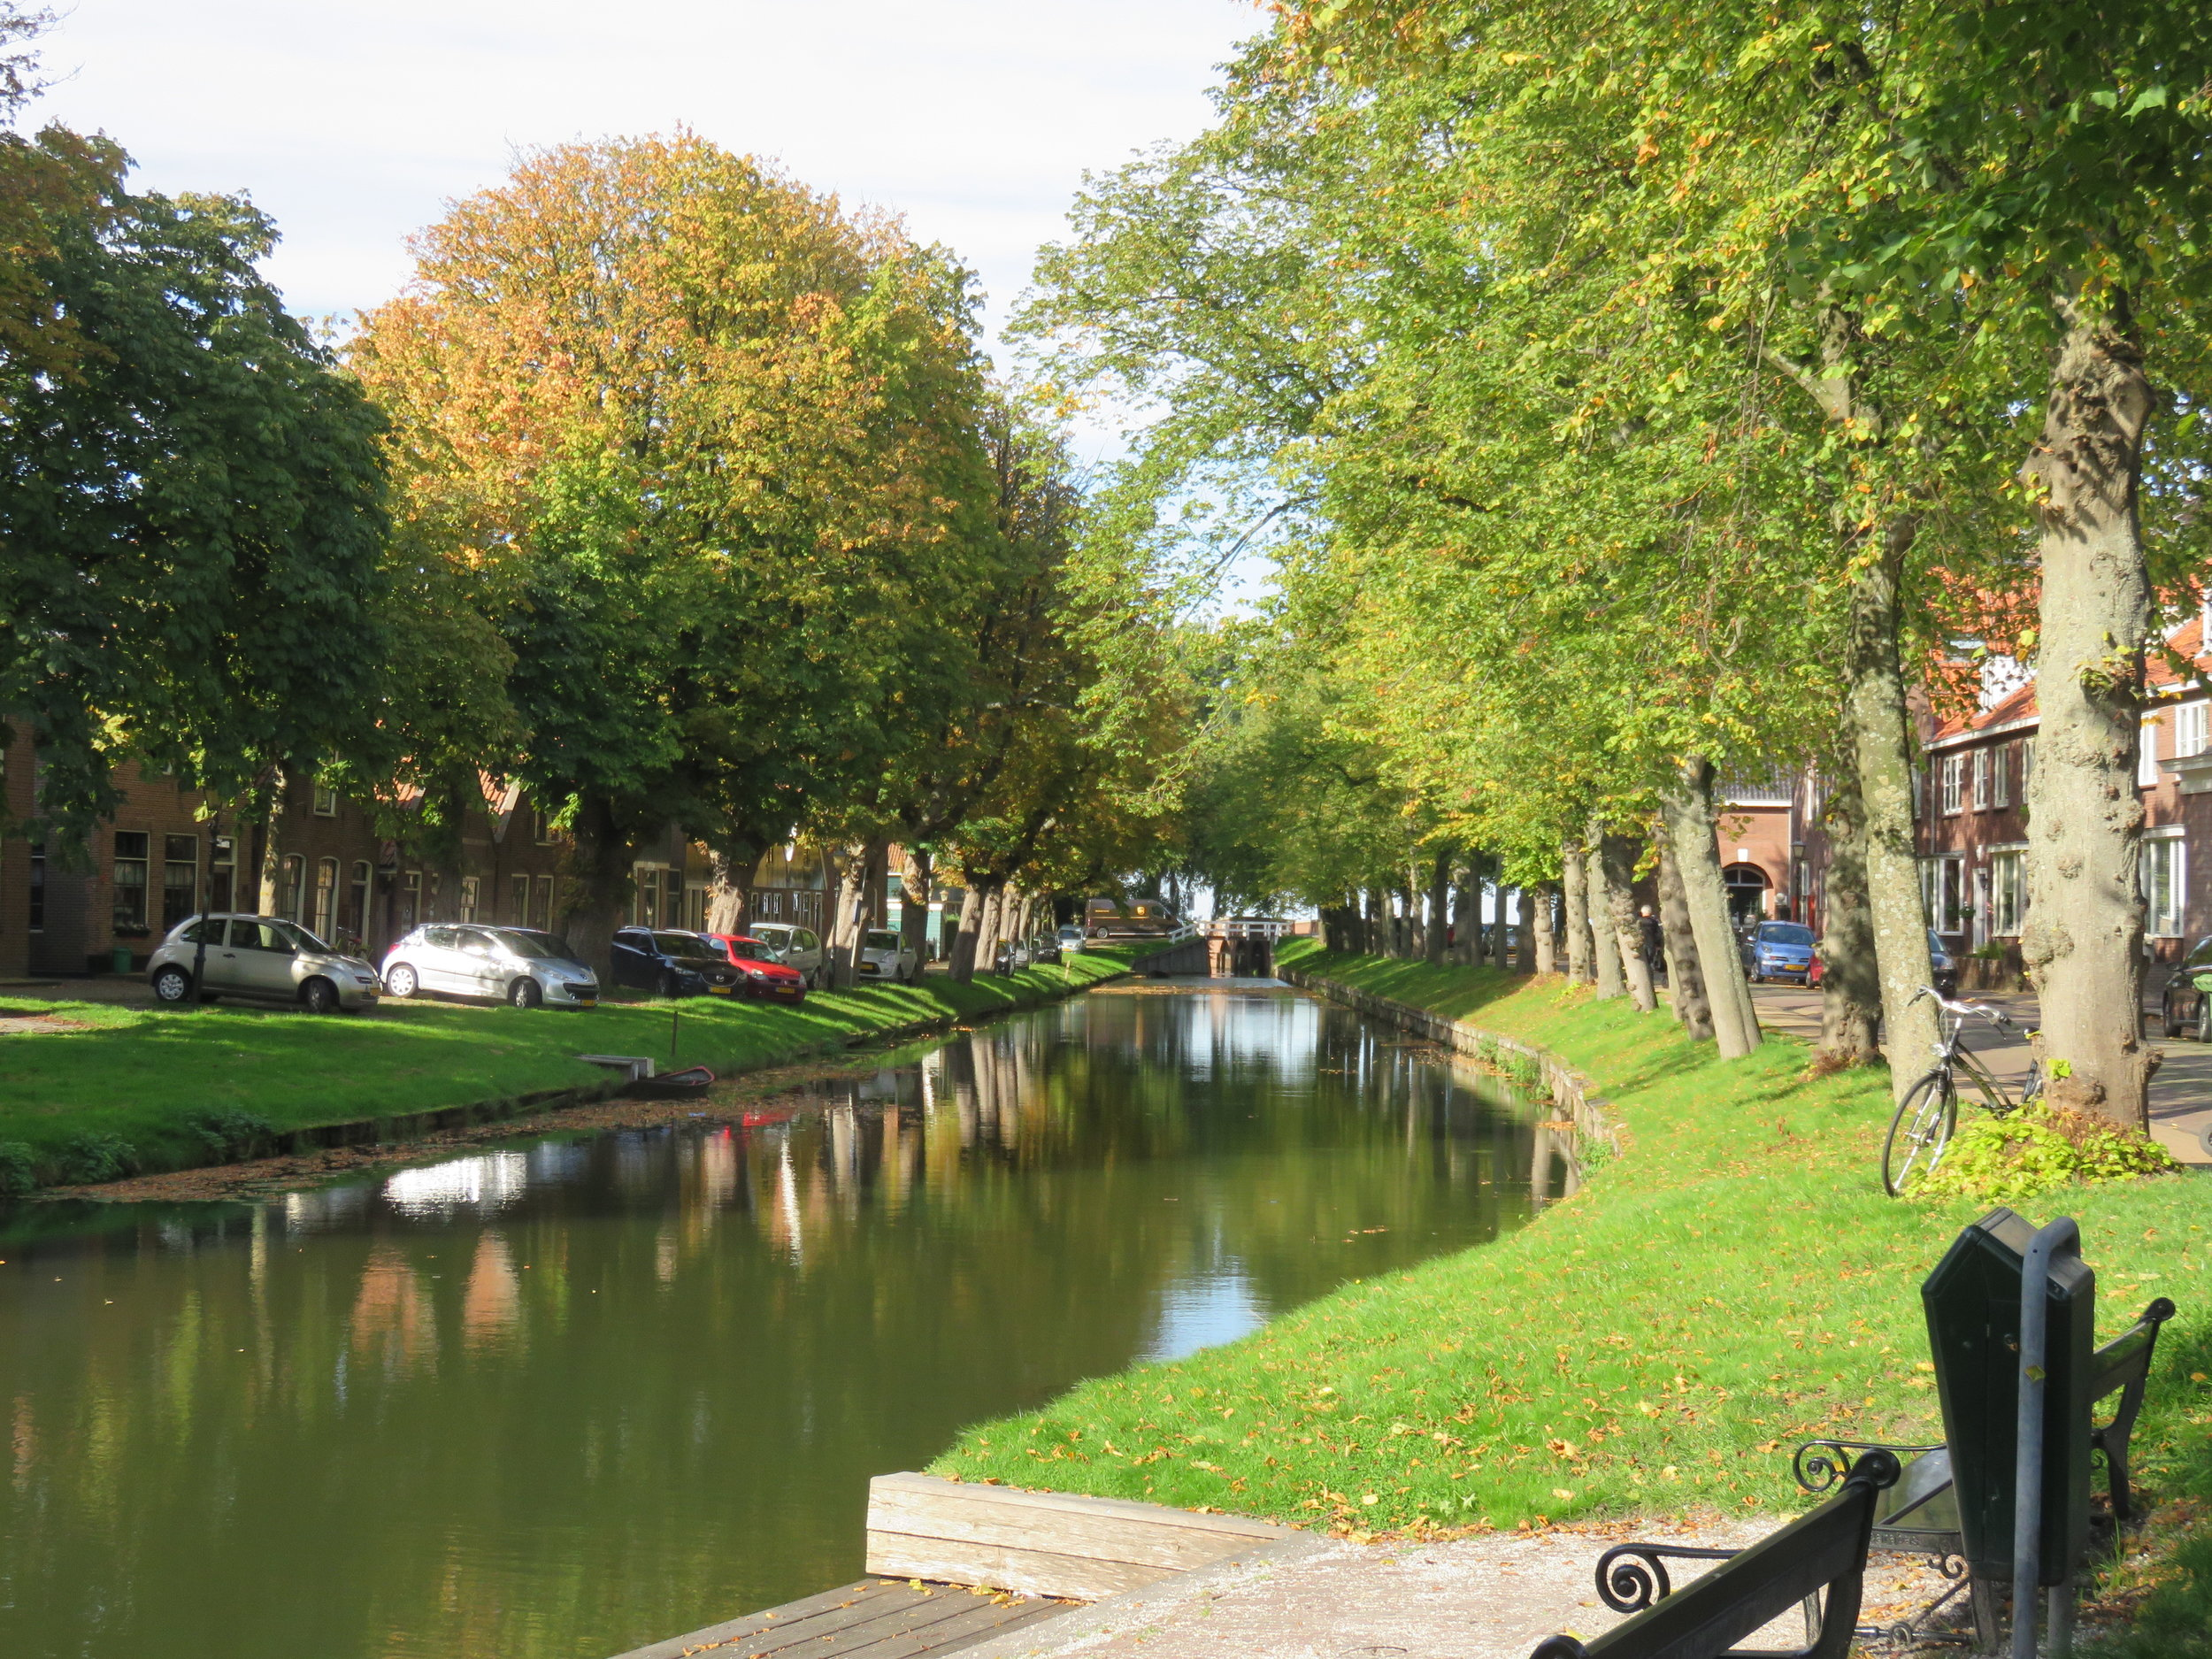 We put together a quick picnic lunch in Edam and have our snack in the park.